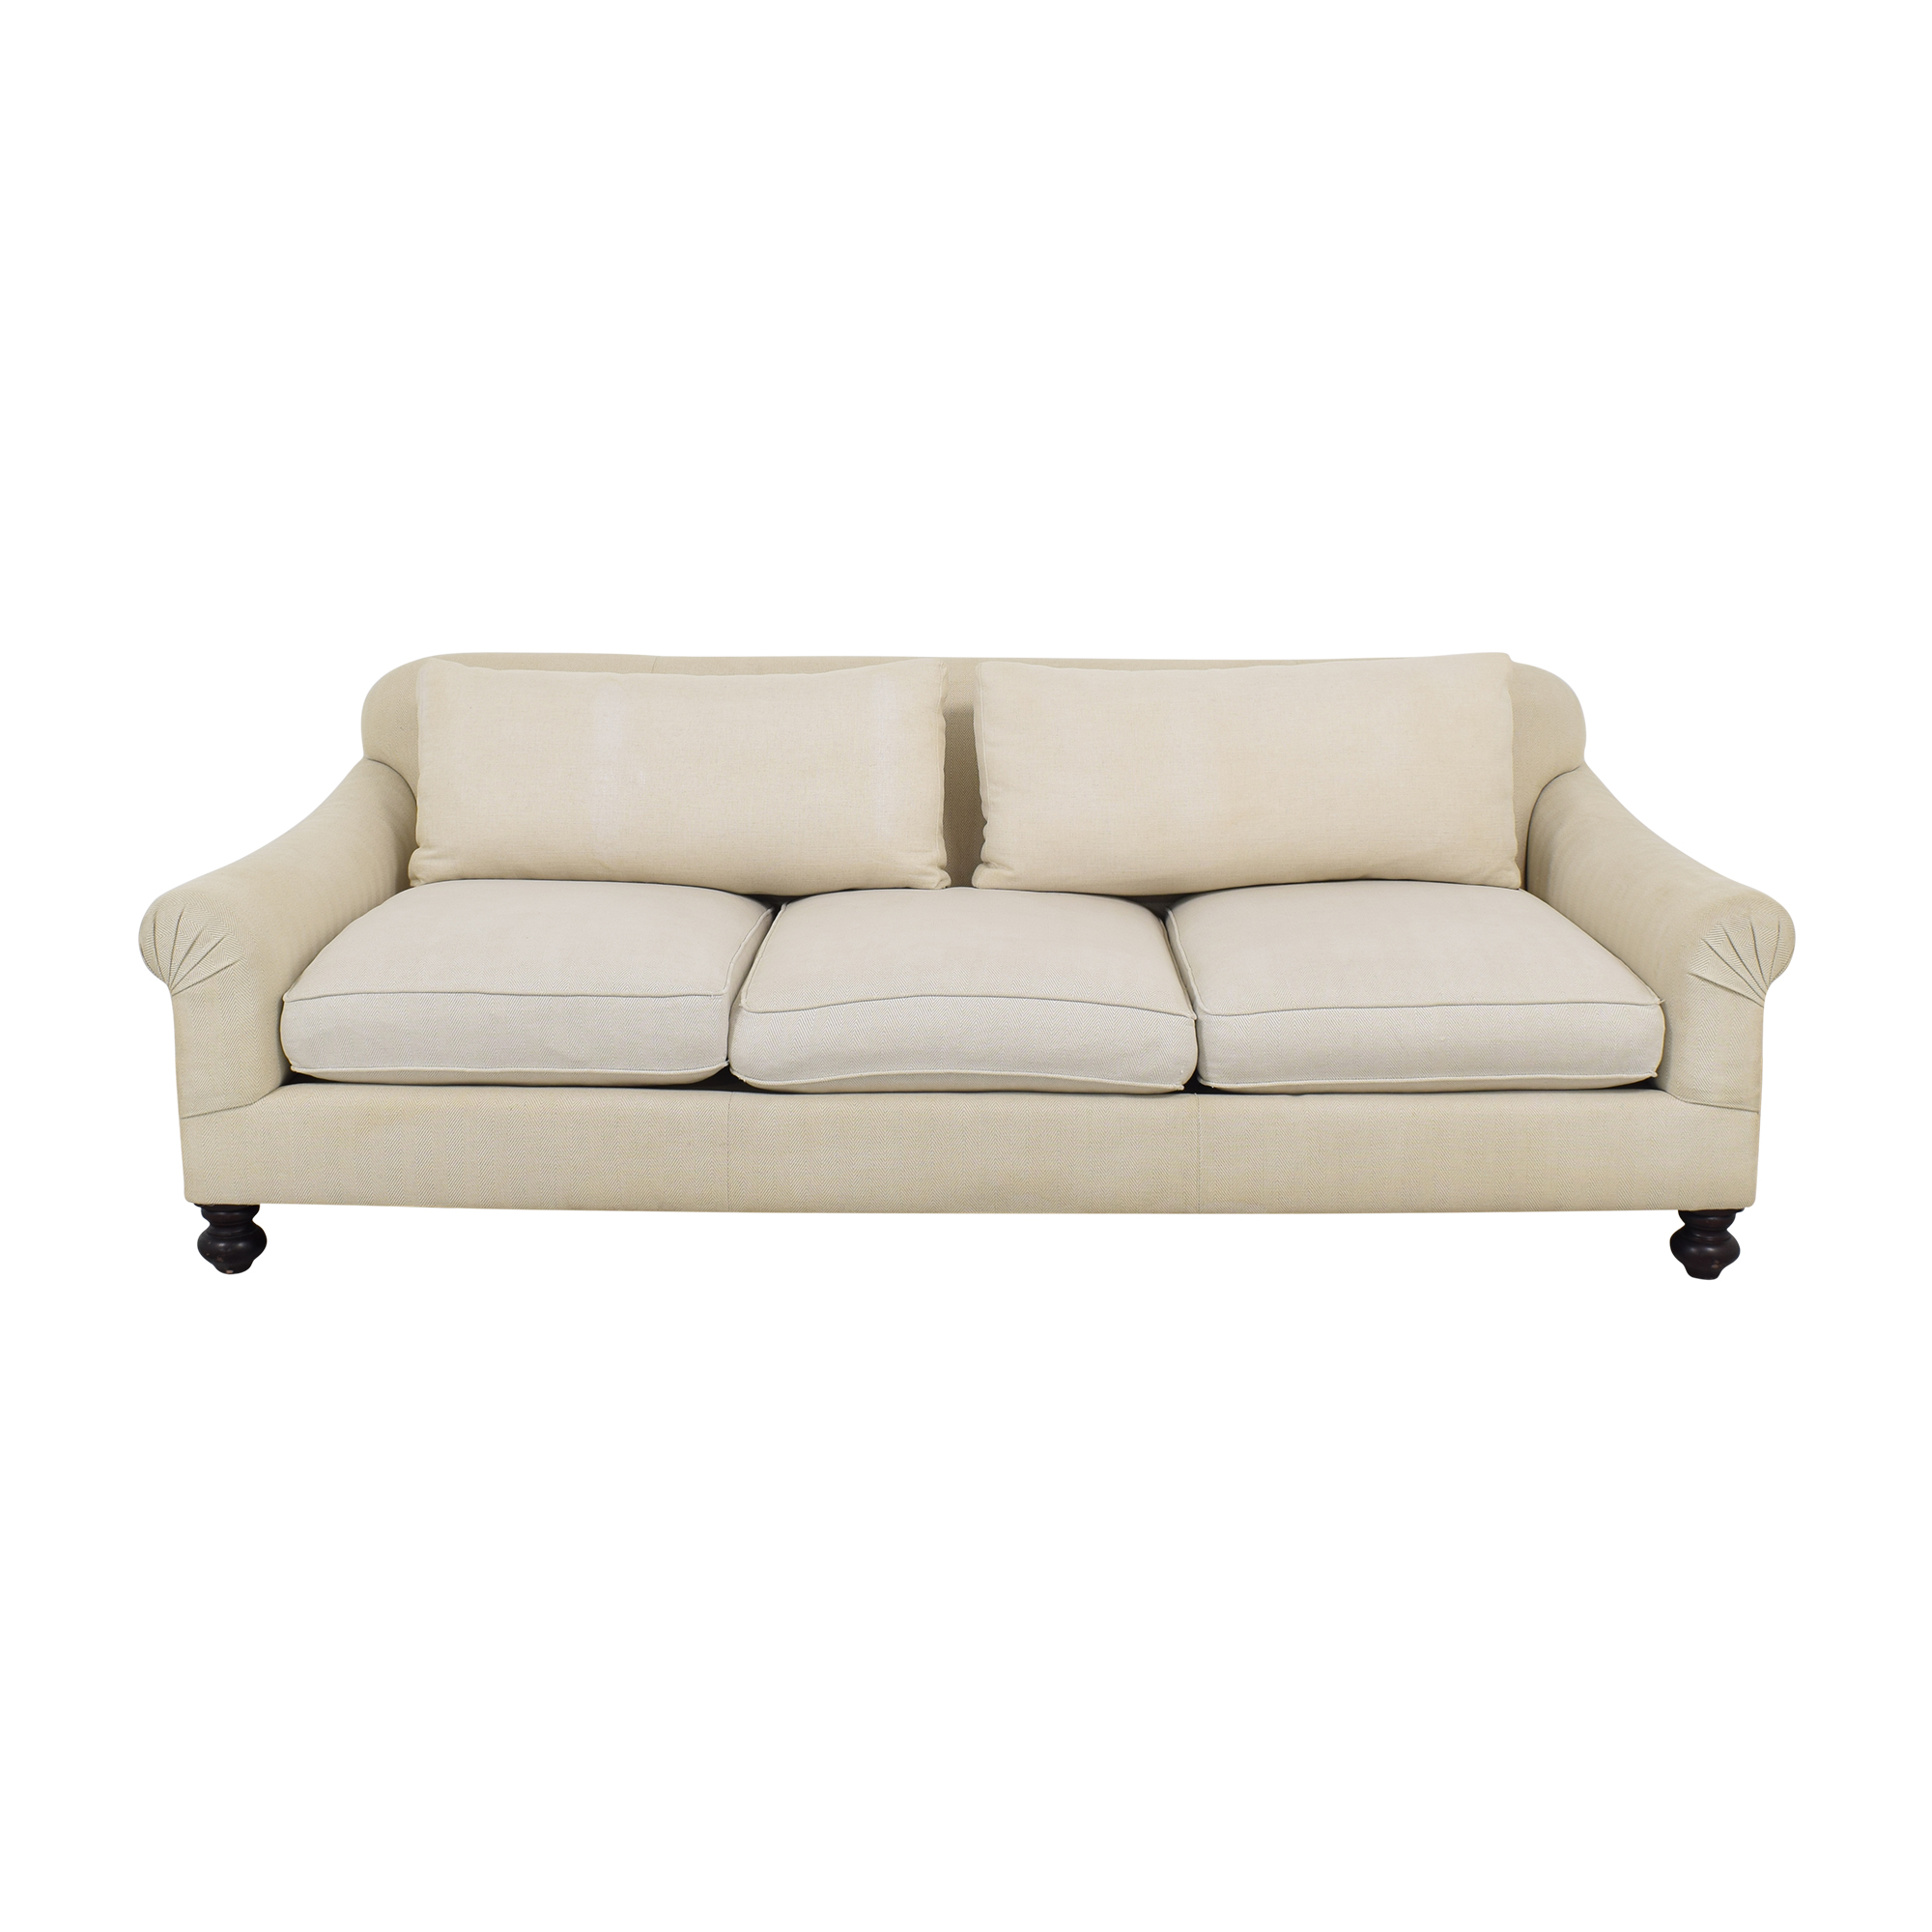 Innovation Living Innovation Living Roll Arm Sofa nyc